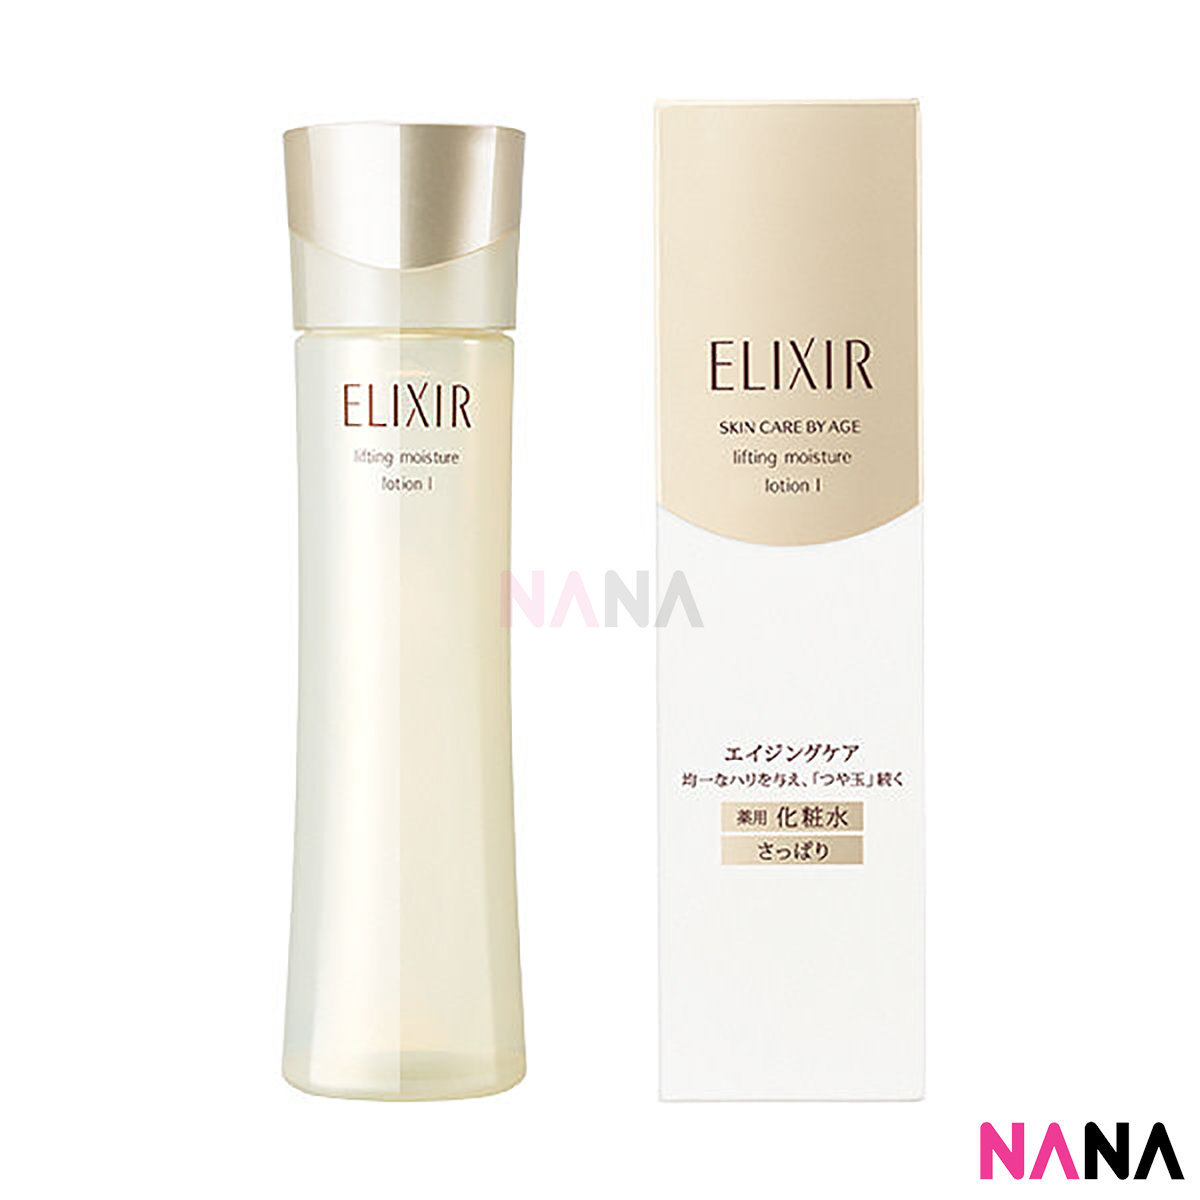 Elixir Skin Care By Age Lifting Moisture Lotion I 170ml